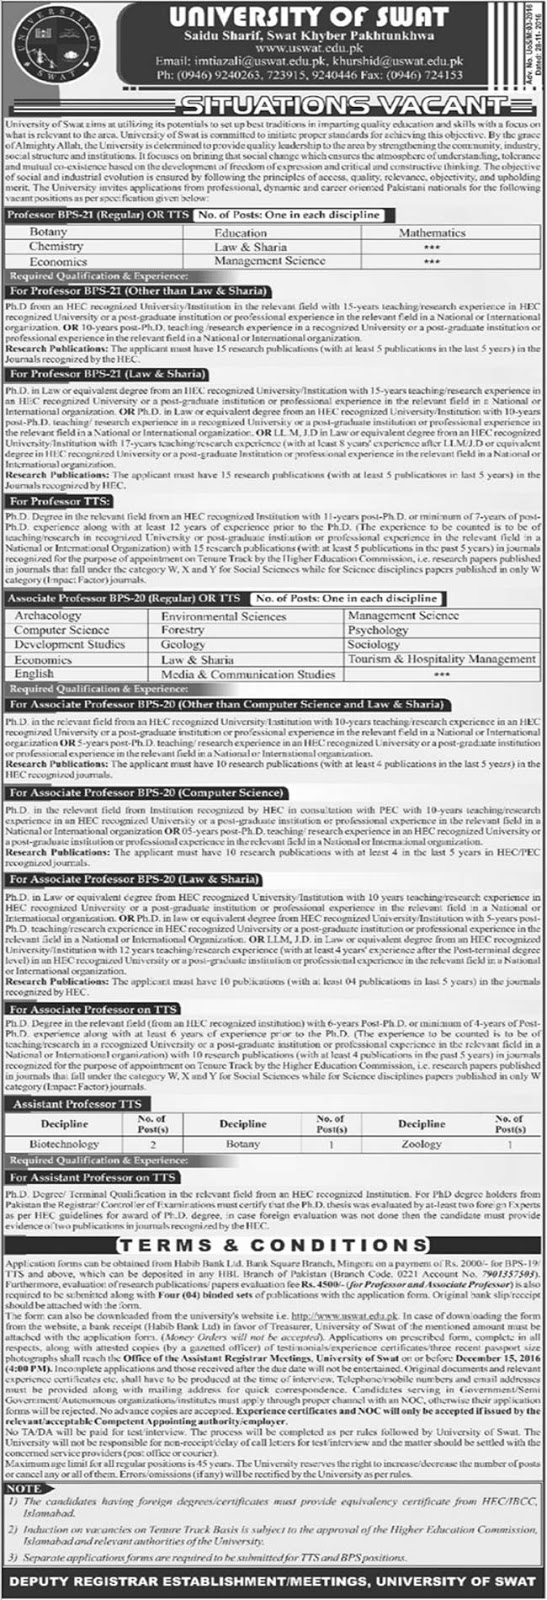 Careers in University of Swat khyber Pakhtunkhwa